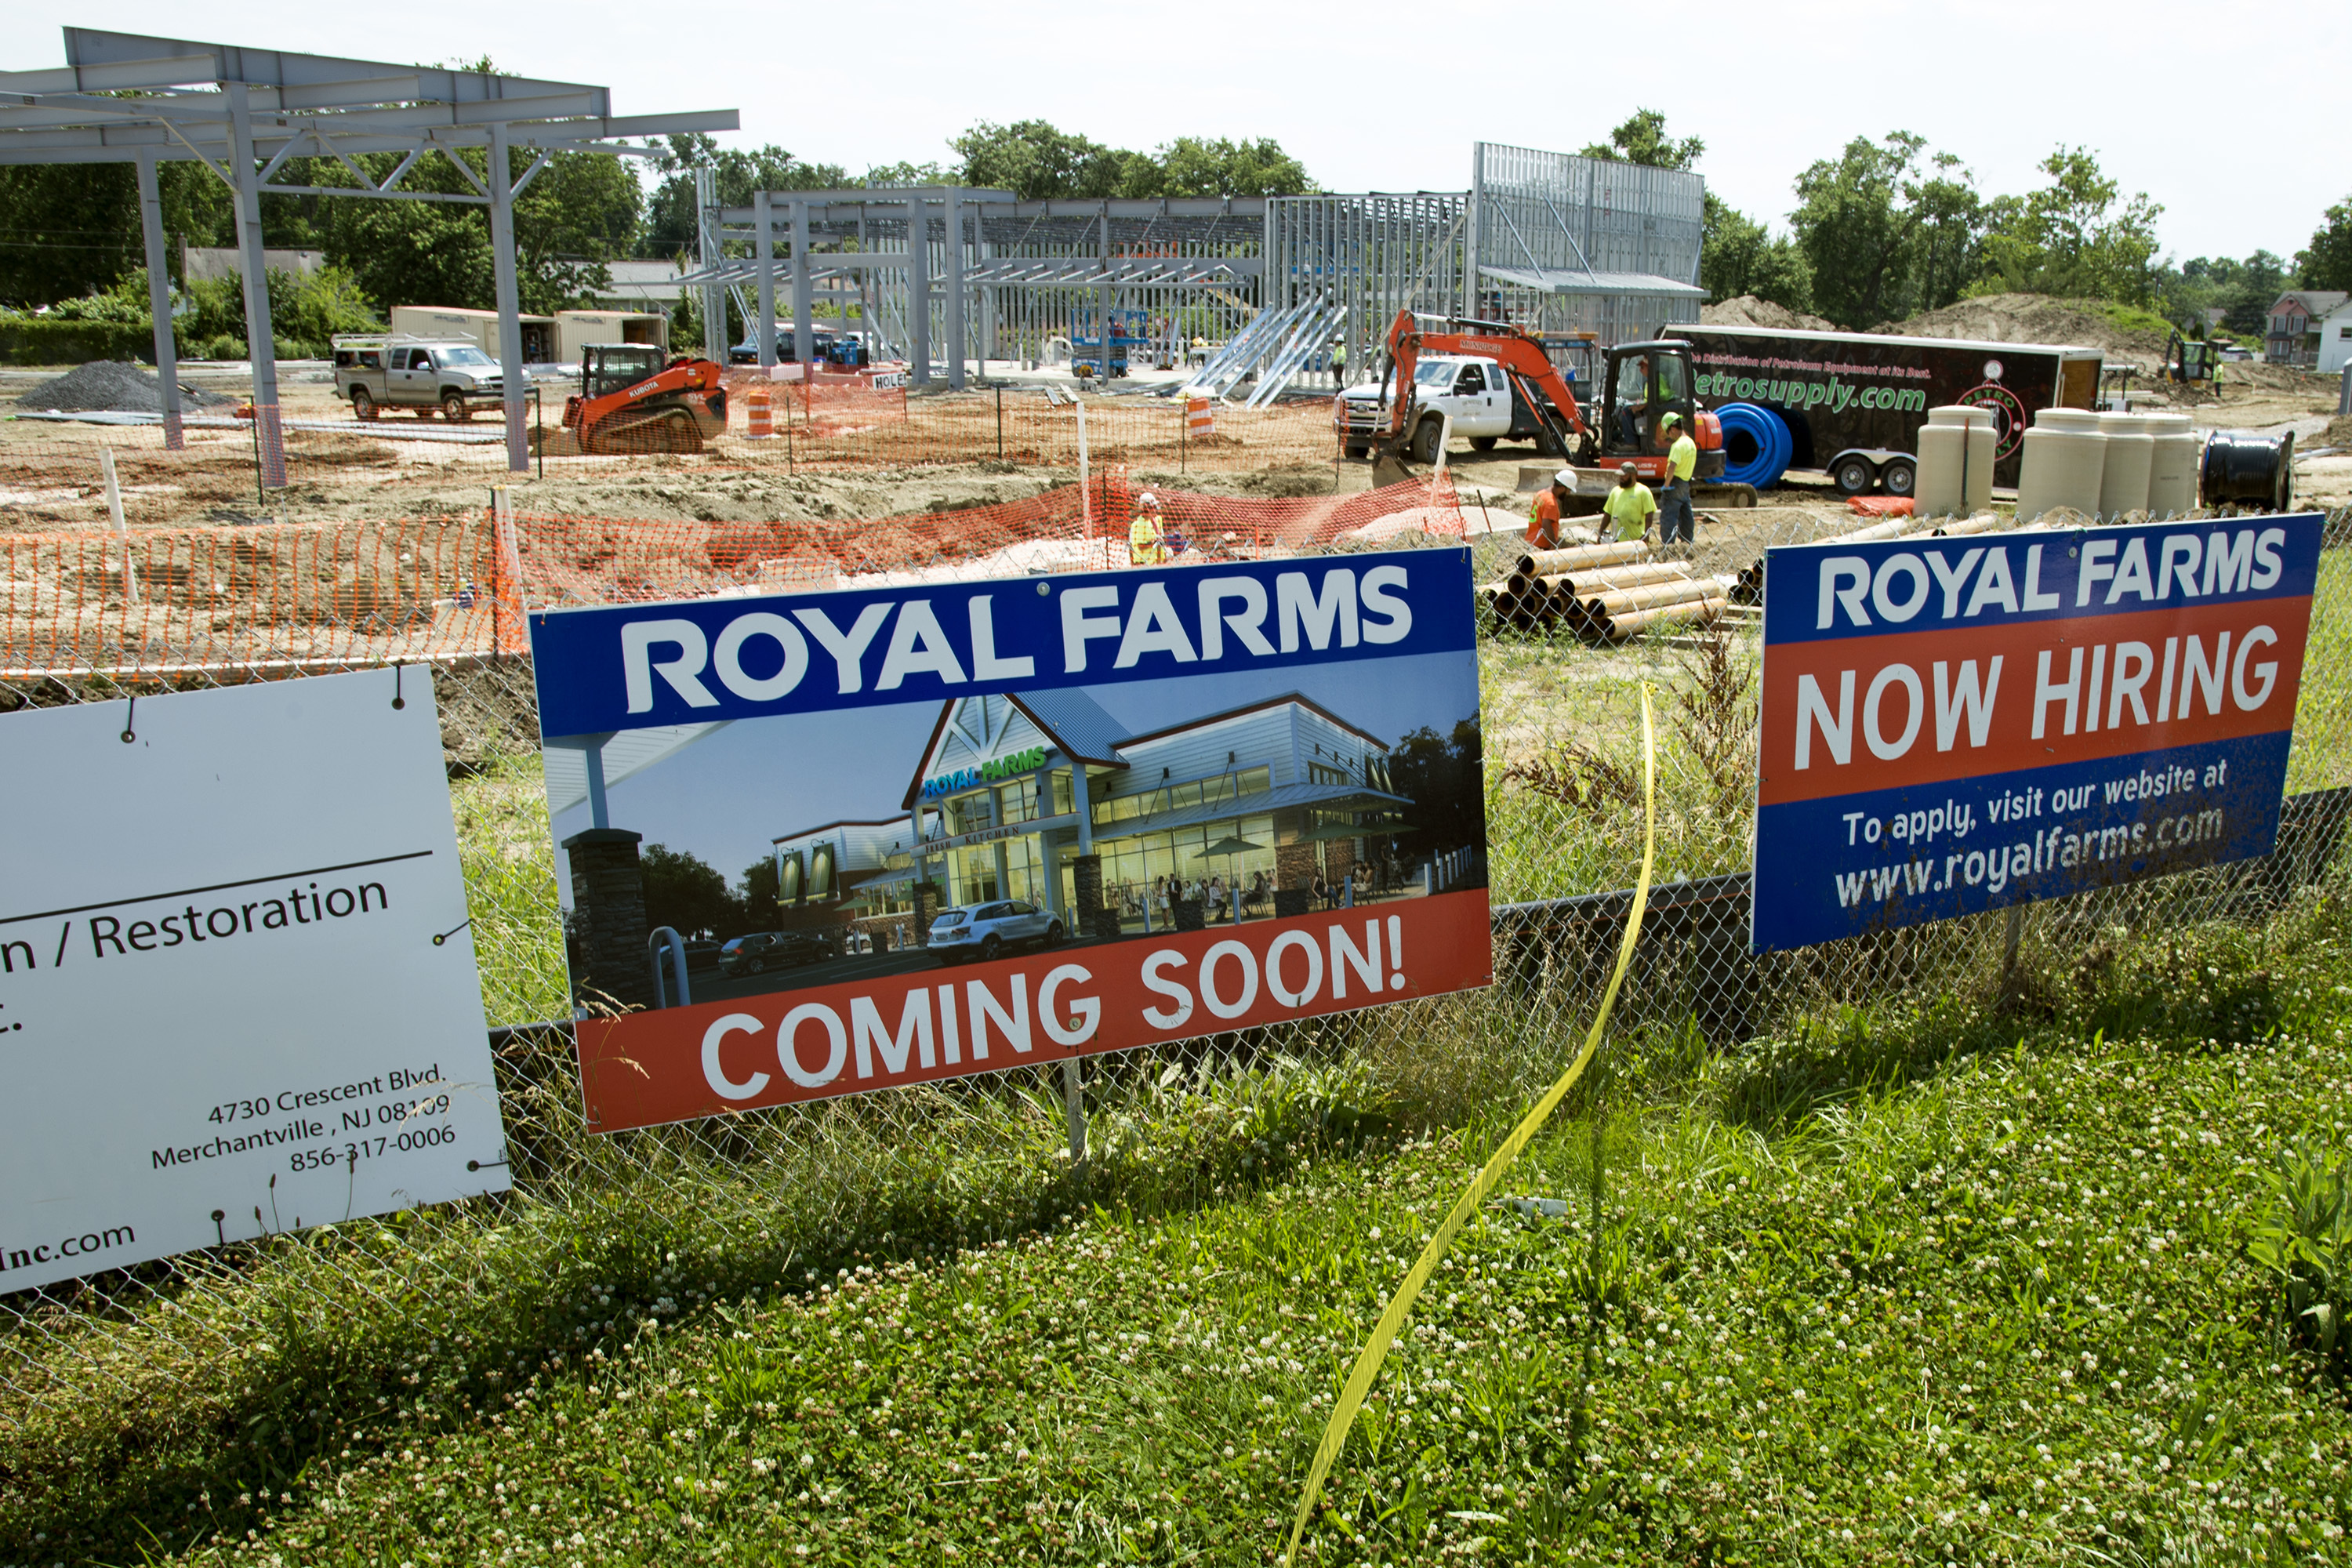 If bricks and mortar retailing is supposedly becoming passé, South Jersey didn´t get the memo. Wawas and Royal Farms are going up all over the place, including this Royal Farms under construction in Magnolia, Camden County. It is one of four planned South Jersey outlets.